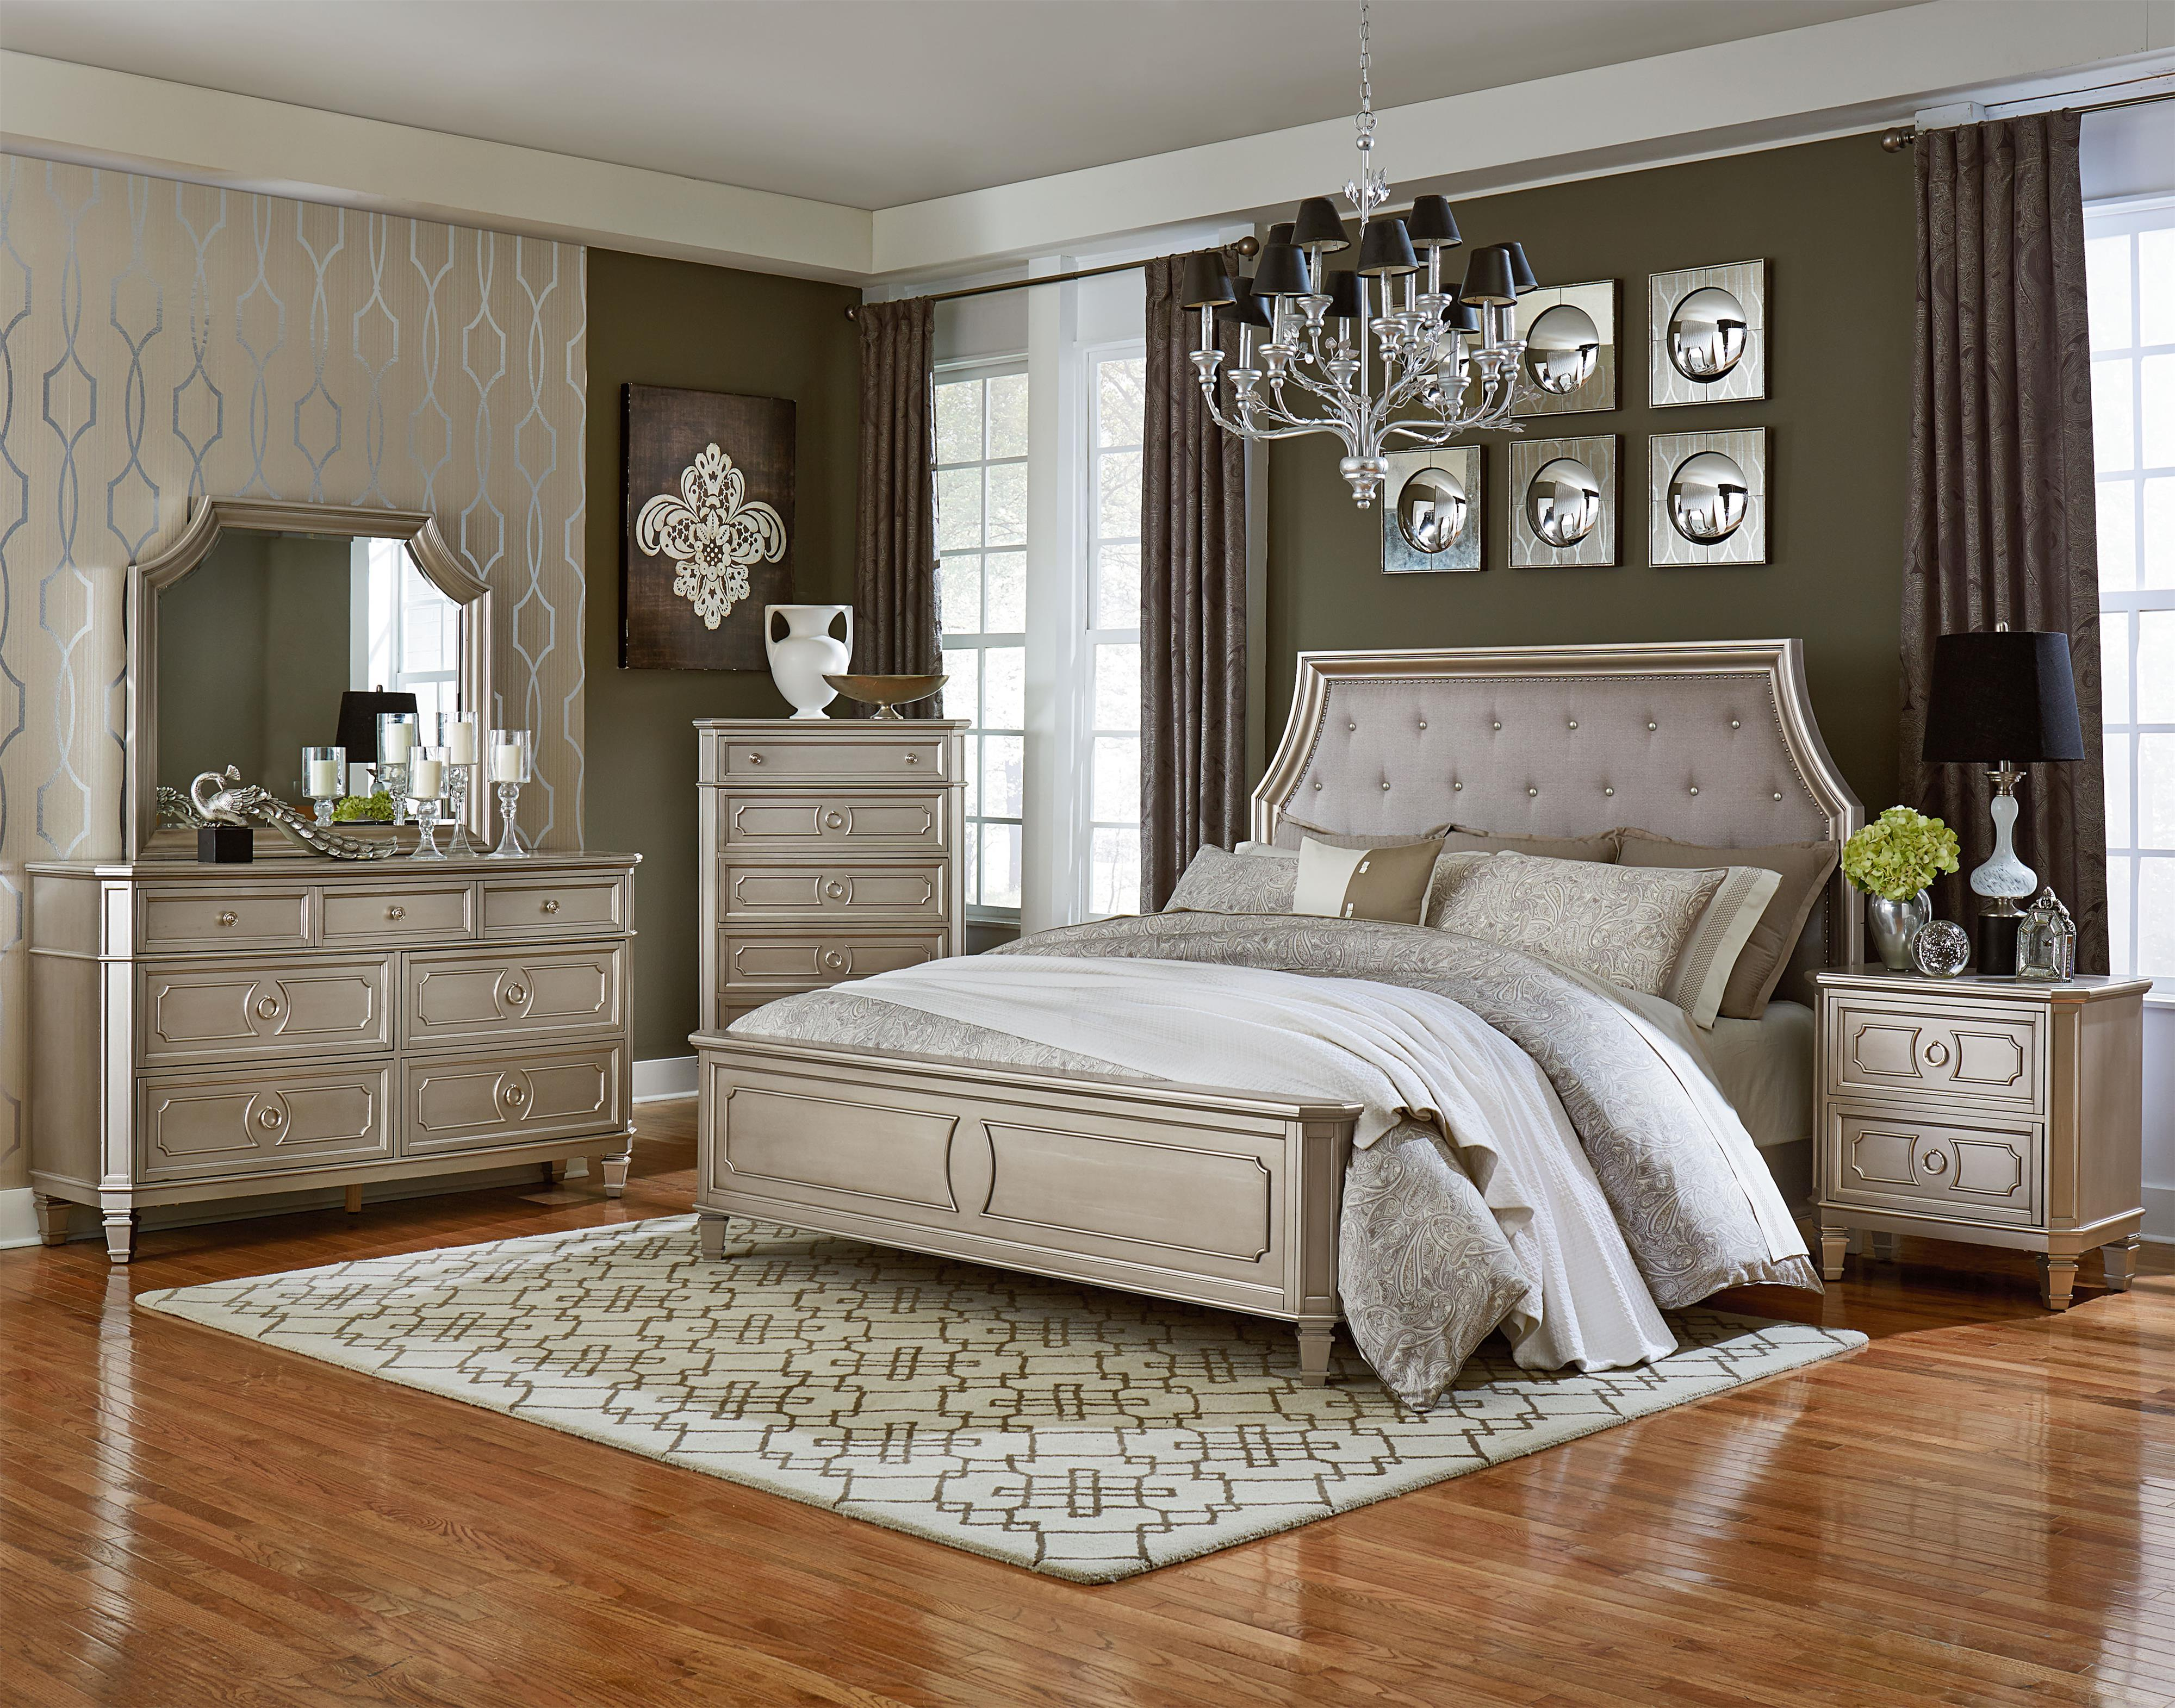 Standard Furniture Windsor Silver King Bedroom Group Dunk Bright Furniture Bedroom Group